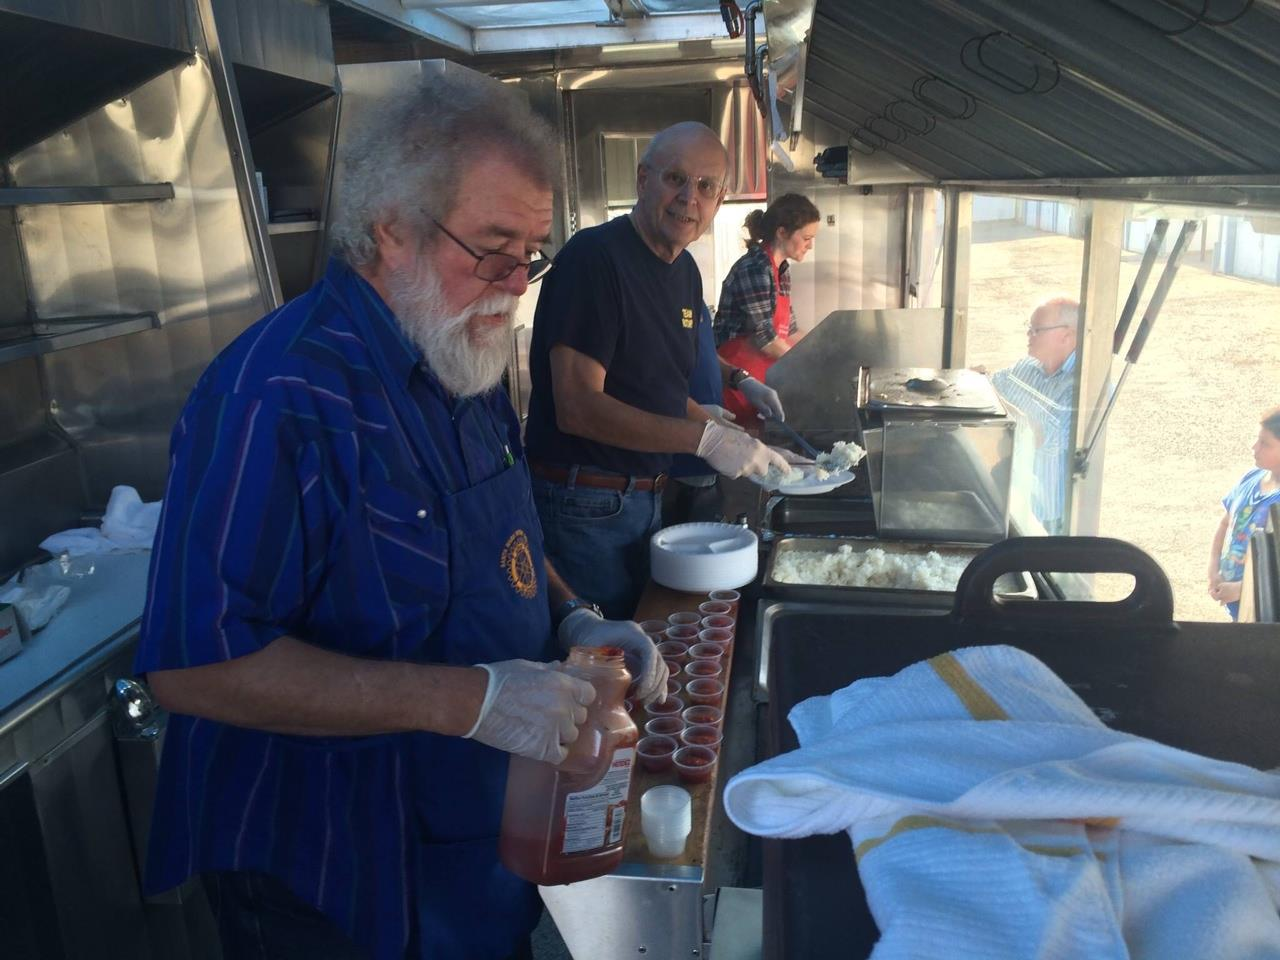 Conners sales group red hat project - The Rotary Club Of Santa Maria South Cooked Up Some Delicious Chicken Verde In The Sos Truck To Serve To Residents Of A Nearby Apartment Complex